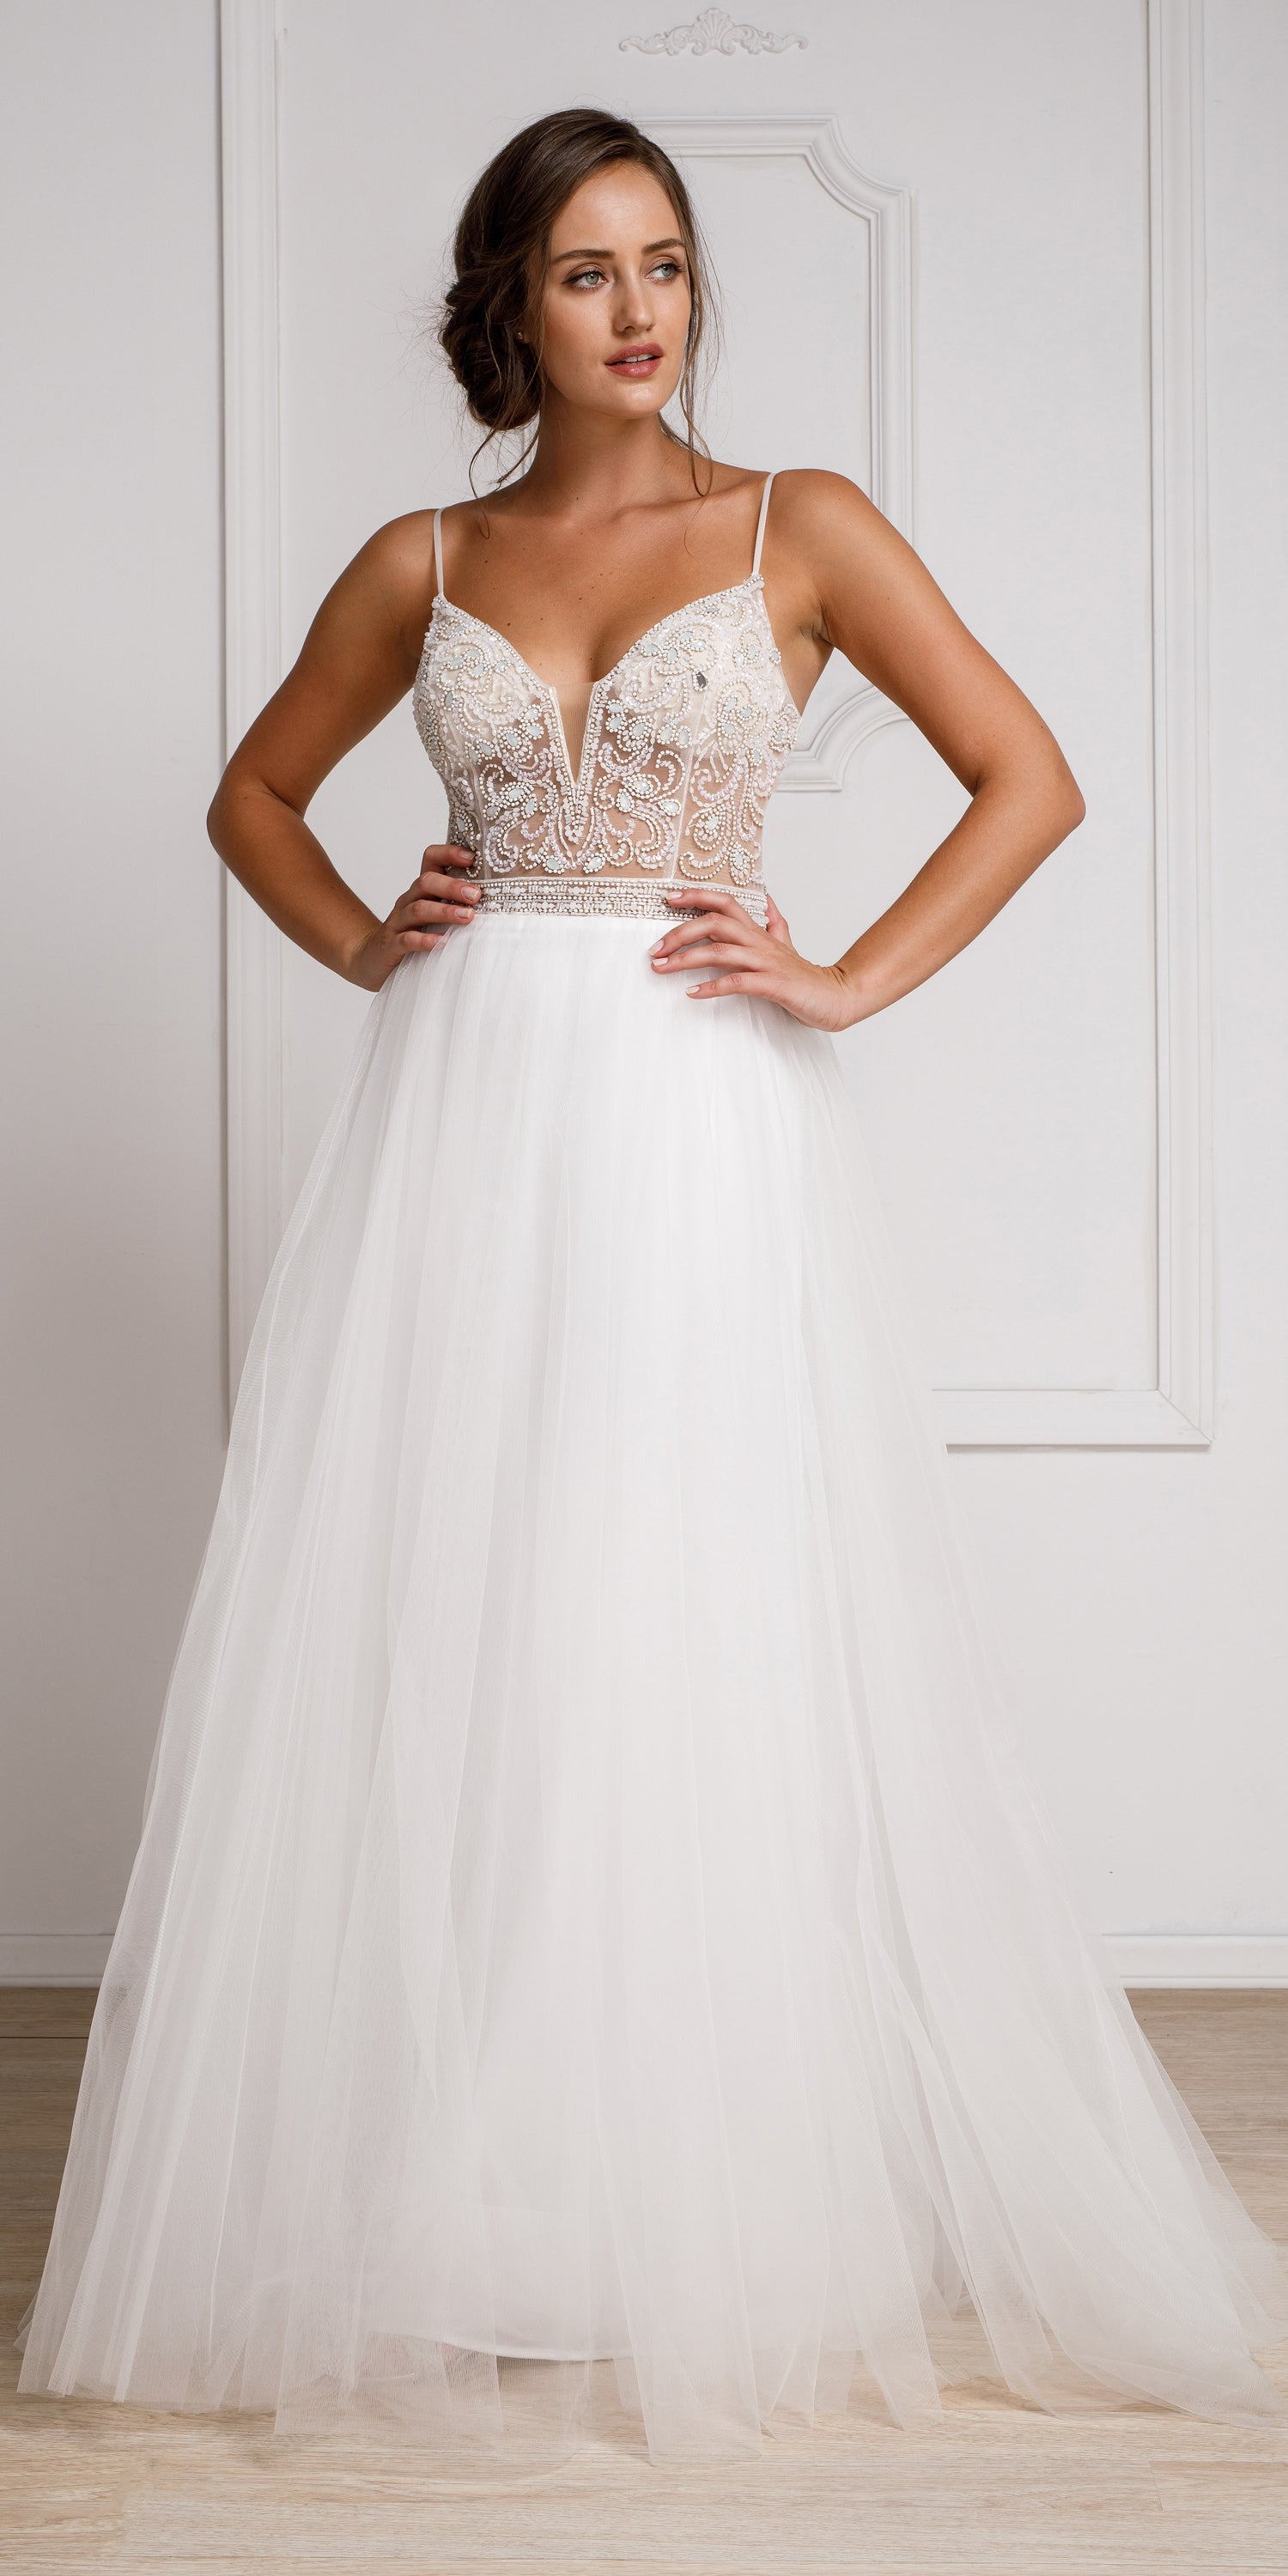 Image of Beaded Spaghetti Prom Gown With Tulle Skirt in White